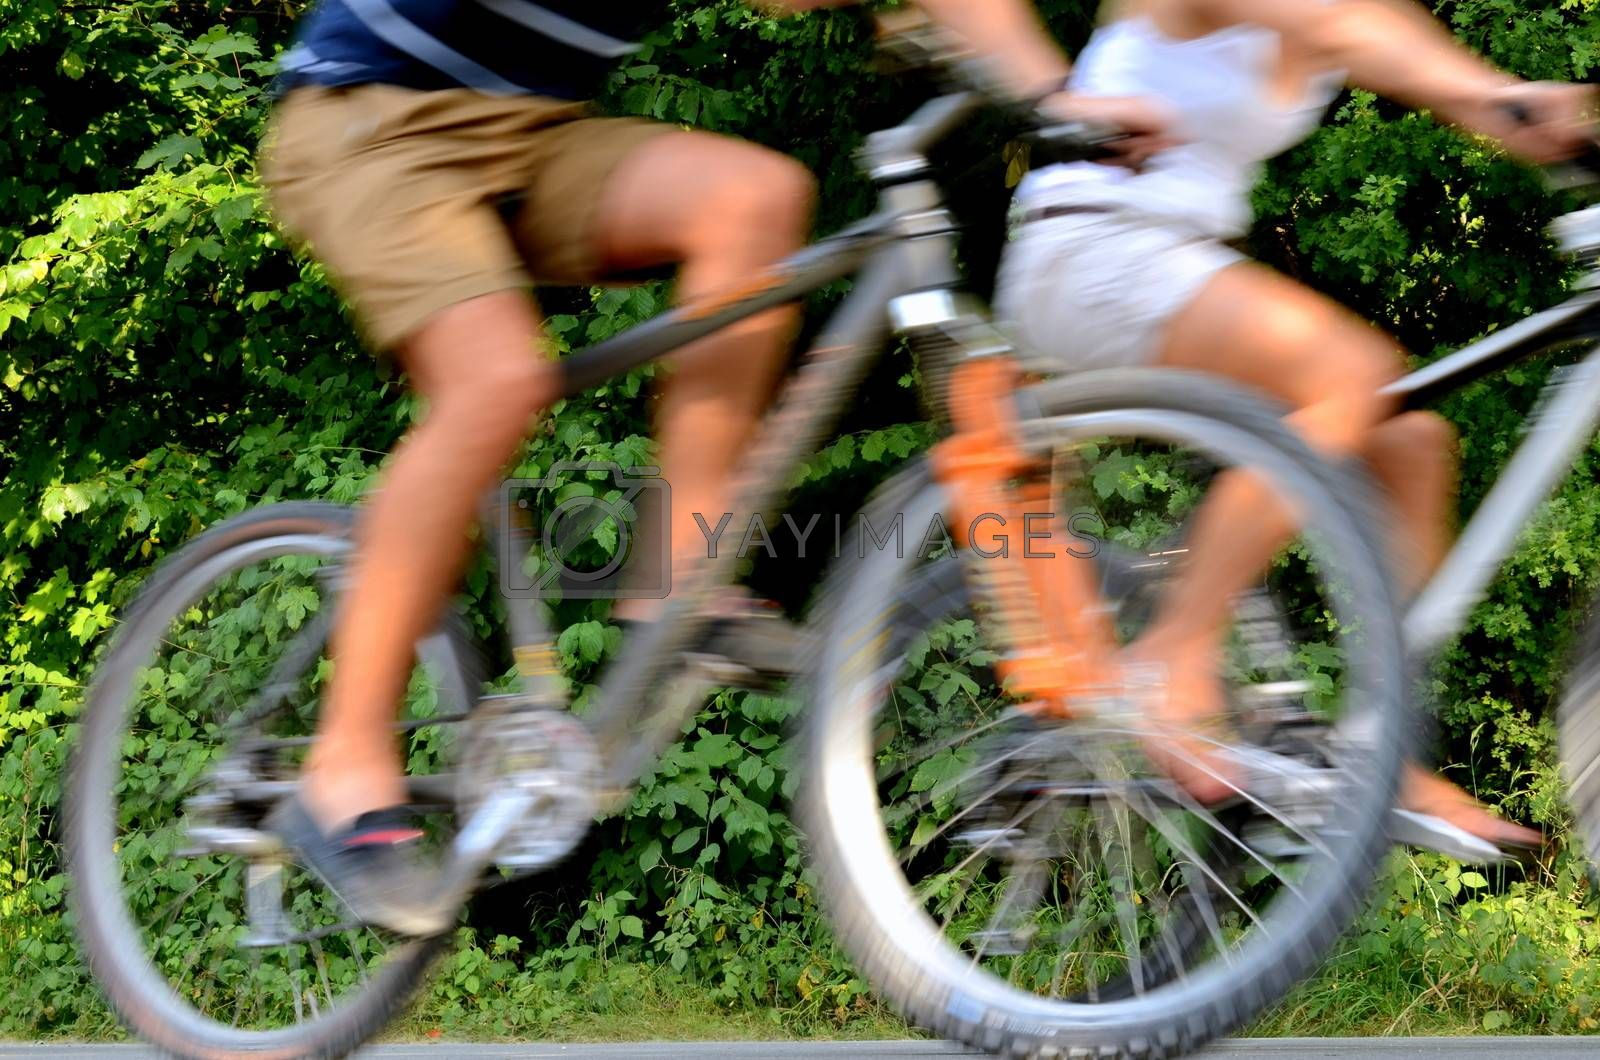 Healthy Lifestyle Image Of A Couple Cycling WIth Blurred Motion